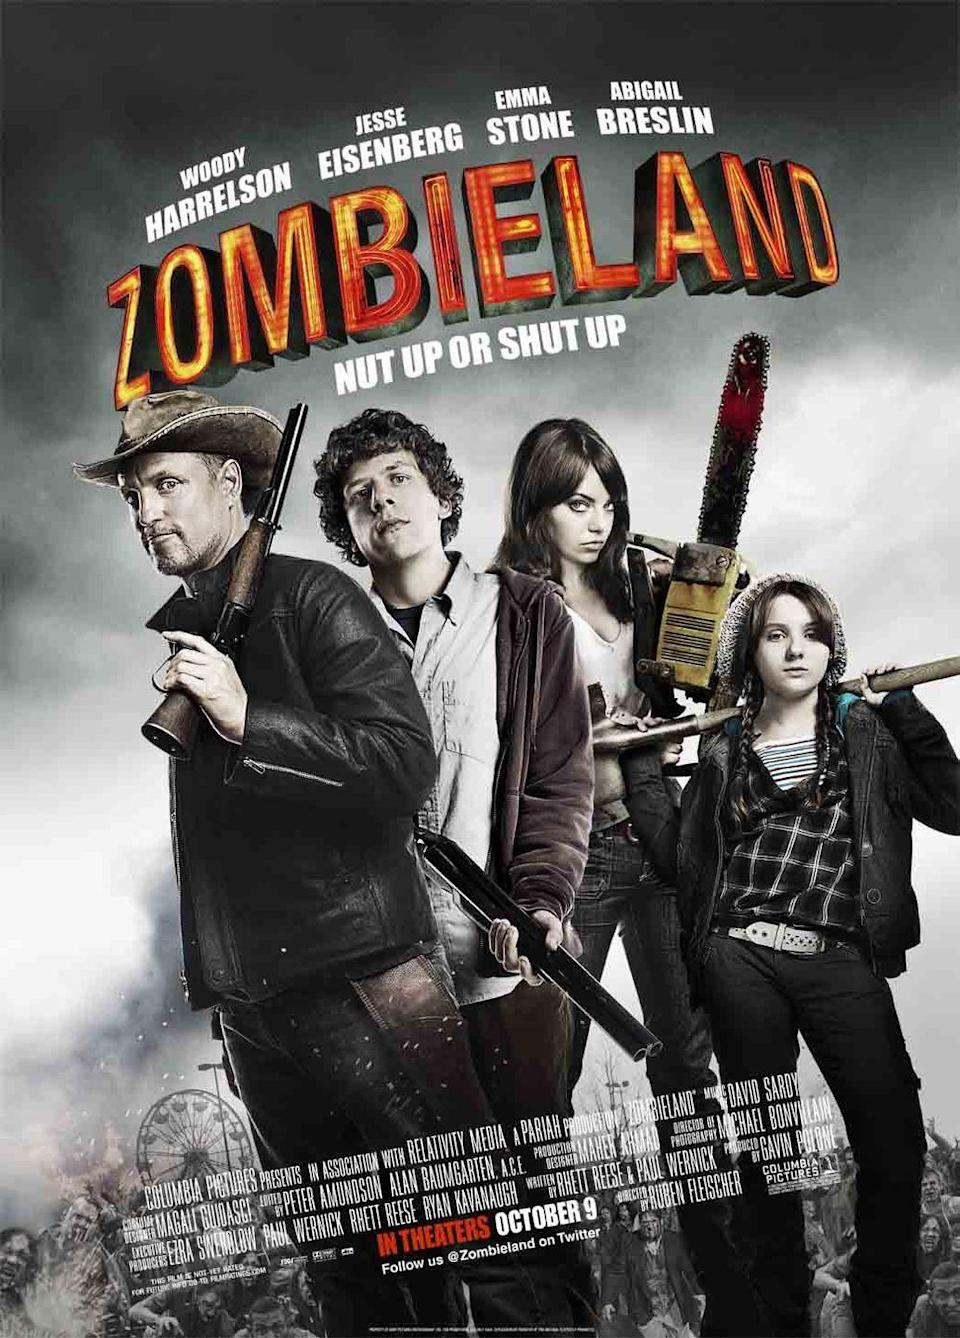 """<p>In an attempt to survive a zombie apocalypse, Columbus (Jesse Eisenberg) travels with Tallahassee (Woody Harrelson), Wichita (Emma Stone), and Little Rock (Abigail Breslin) fighting zombies and attempting to find some sort of relief from the chaos. </p><p>As a bonus, if you watch <em>Zombieland </em>this Halloween season, you'll be prepared to watch <em>Zombieland: Double Tap</em>.</p><p><a class=""""link rapid-noclick-resp"""" href=""""https://www.amazon.com/Ashley-Lambert/dp/B003AMEWDG/?tag=syn-yahoo-20&ascsubtag=%5Bartid%7C10065.g.29354714%5Bsrc%7Cyahoo-us"""" rel=""""nofollow noopener"""" target=""""_blank"""" data-ylk=""""slk:Watch Now"""">Watch Now</a></p>"""